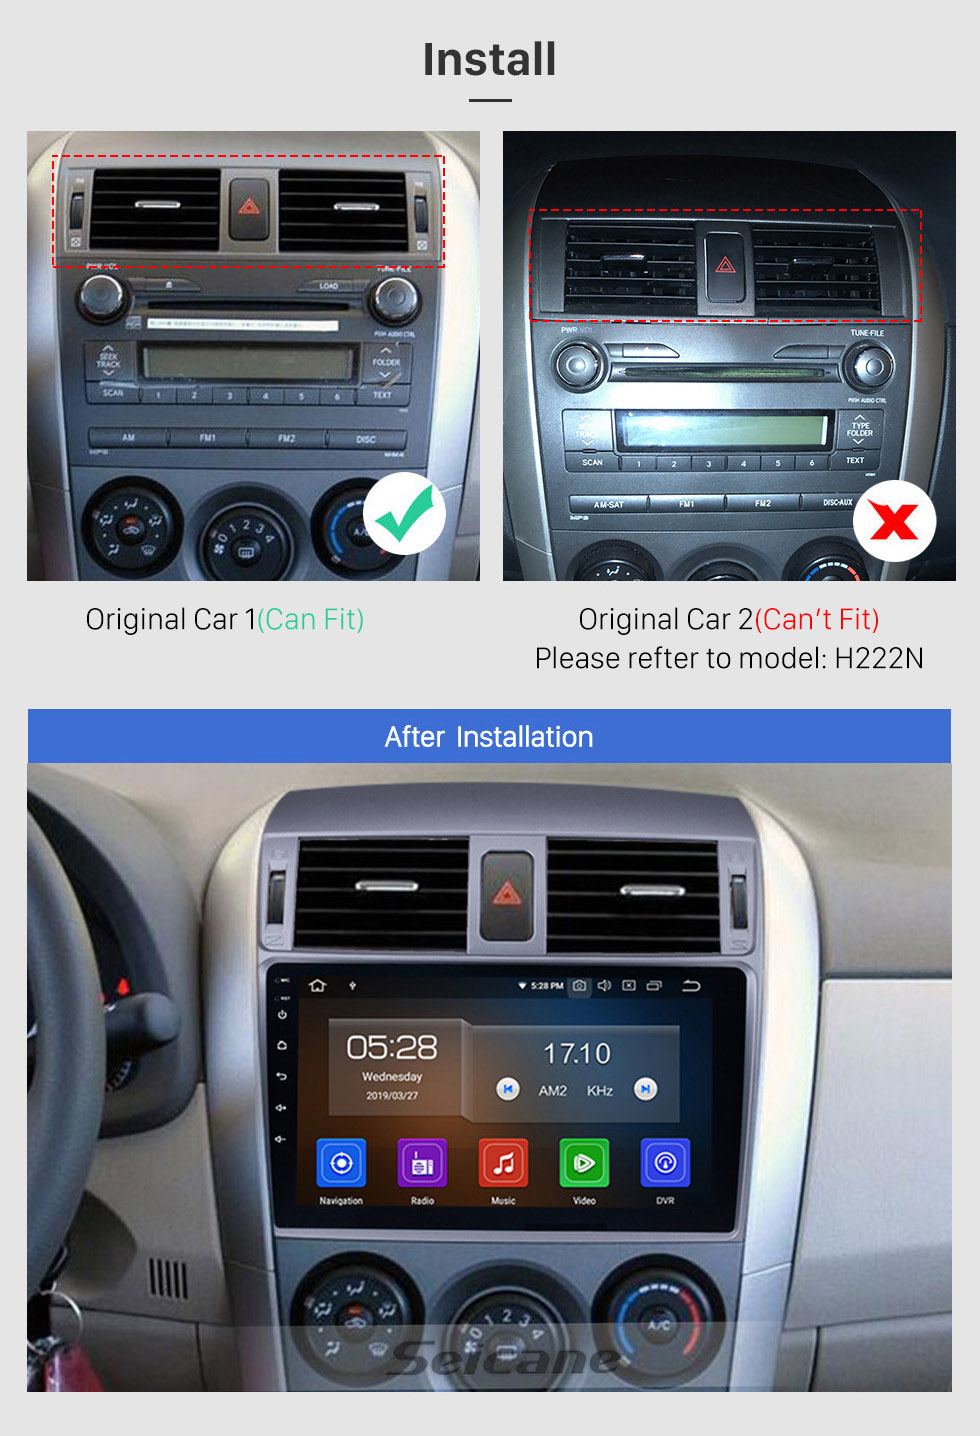 Seicane 2007-2010 Toyota Corolla 9 inch Android 10.0 Autoradio Aftermarket GPS Navigation HD Touchscreen Bluetooth Phone WIFI Mirror Link USB support Carplay DVD Player 4G DVR